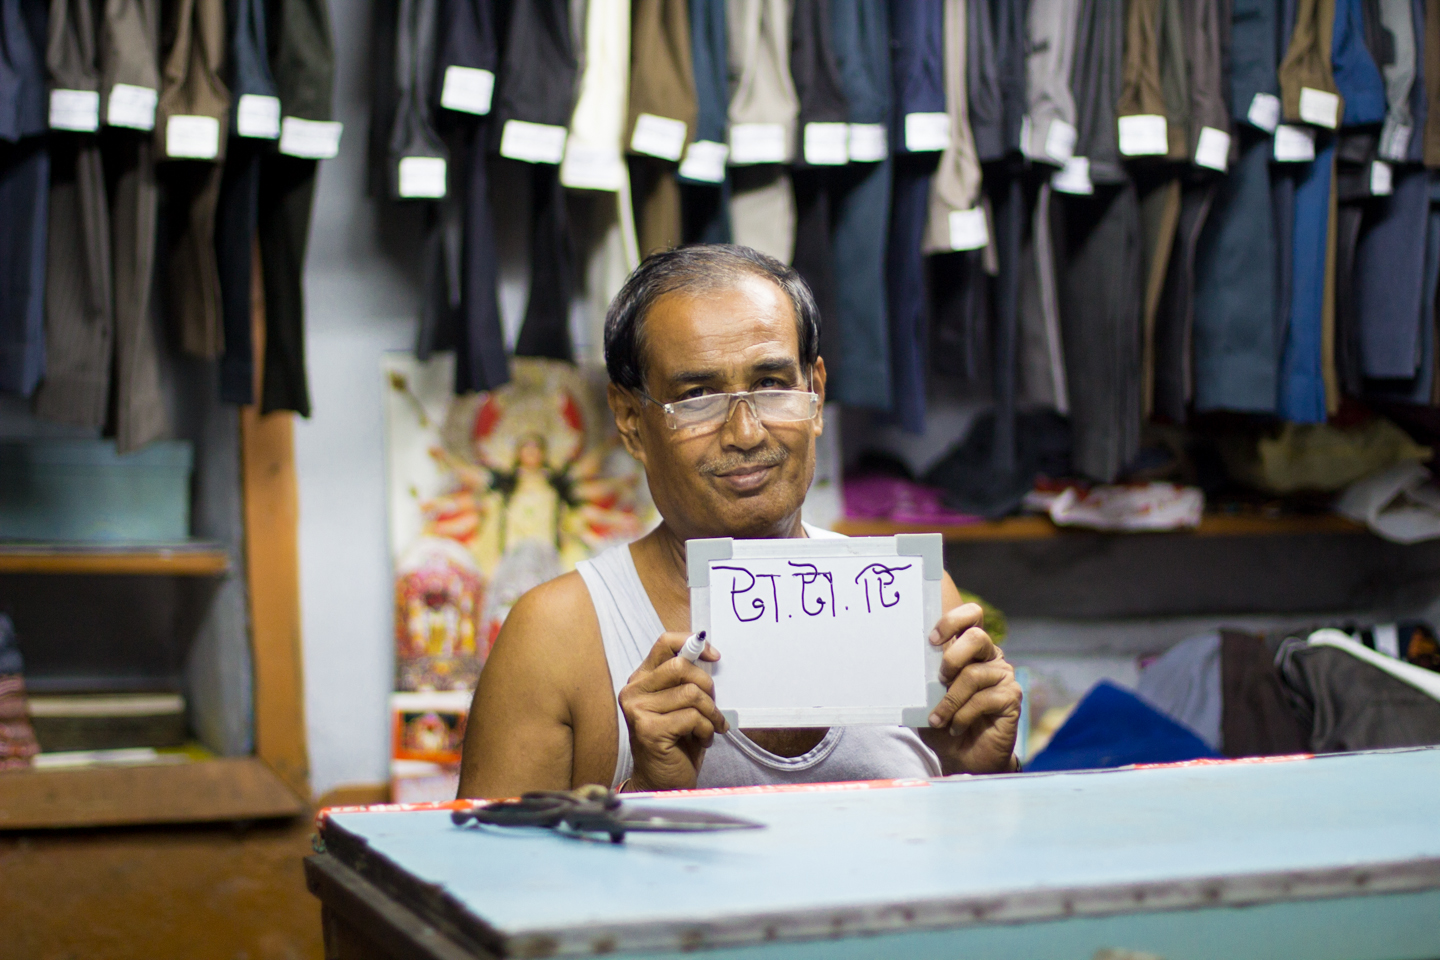 Fifty-year-old Bimoi Roy, a tailor in Kalighat Refugee Hawkers Corner in Kolkata, associates chai with his favorite brand, Tata Tea.